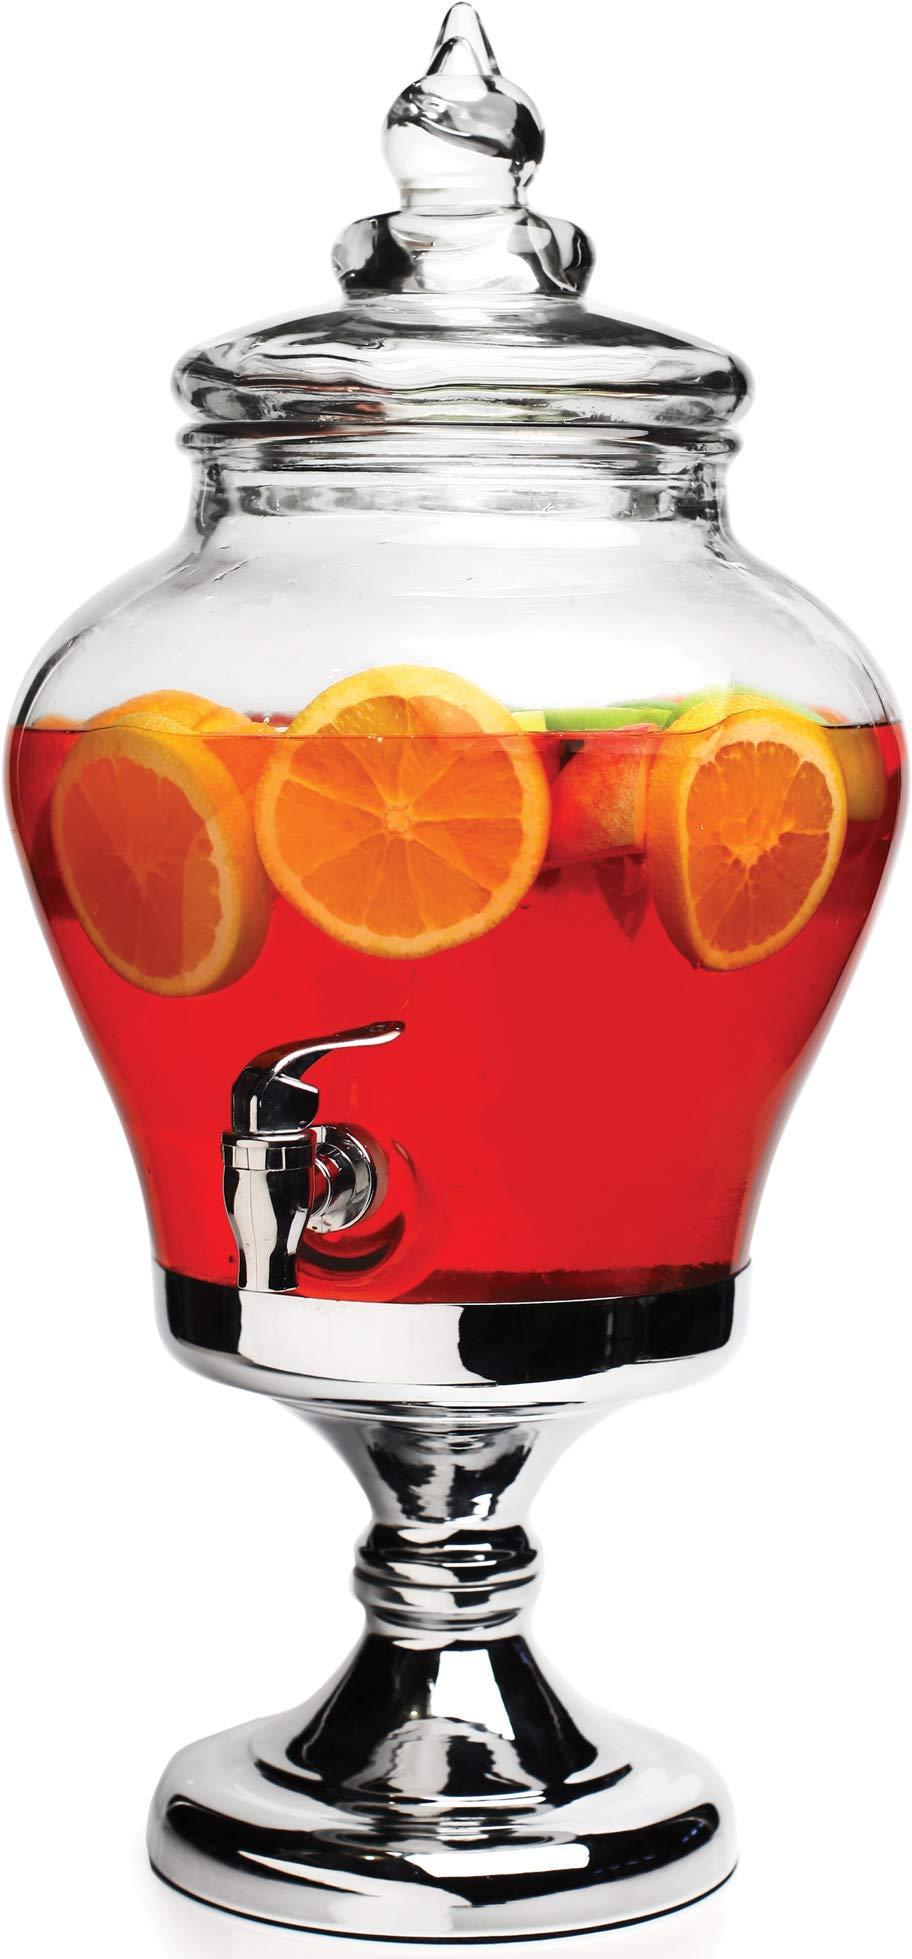 Circleware 69170 Sun Tea Jar Beverage Dispenser and Glass Lid on Chrome Stand Party Entertainment Home Kitchen Glassware Water Pitcher for Juice, Beer, Kombucha Cold Drinks, 2.2 Gallon Portico